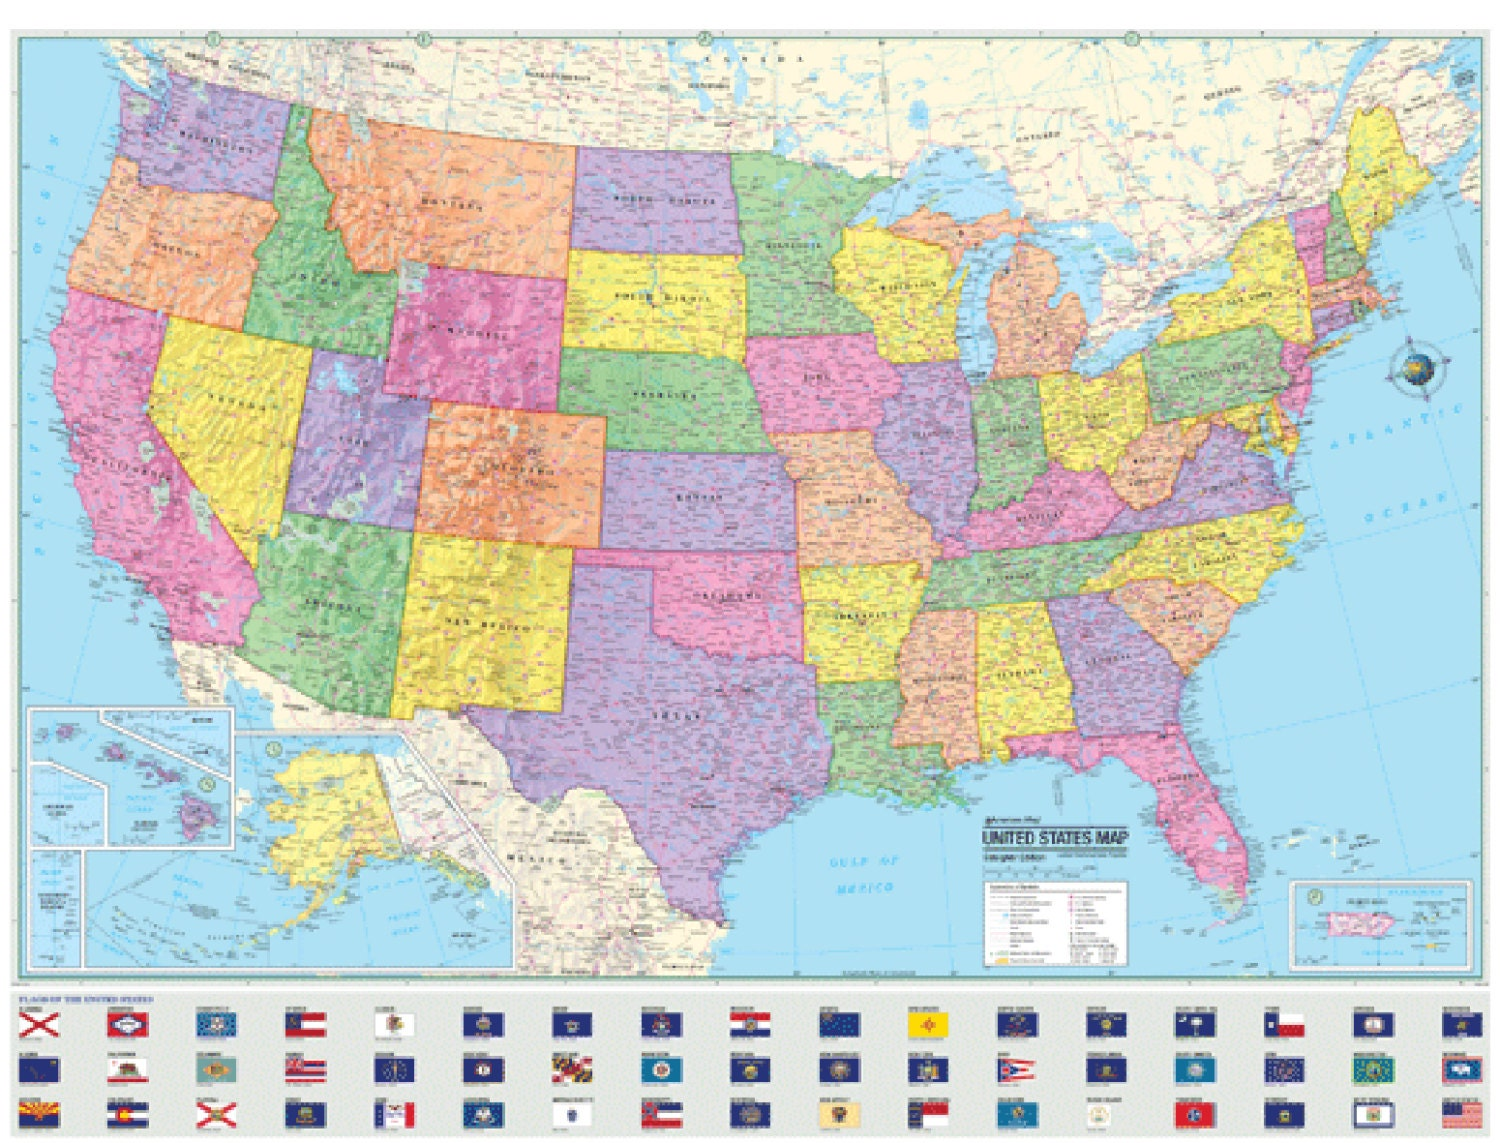 United States Wall Map Joltframework - Us map poster 24x36